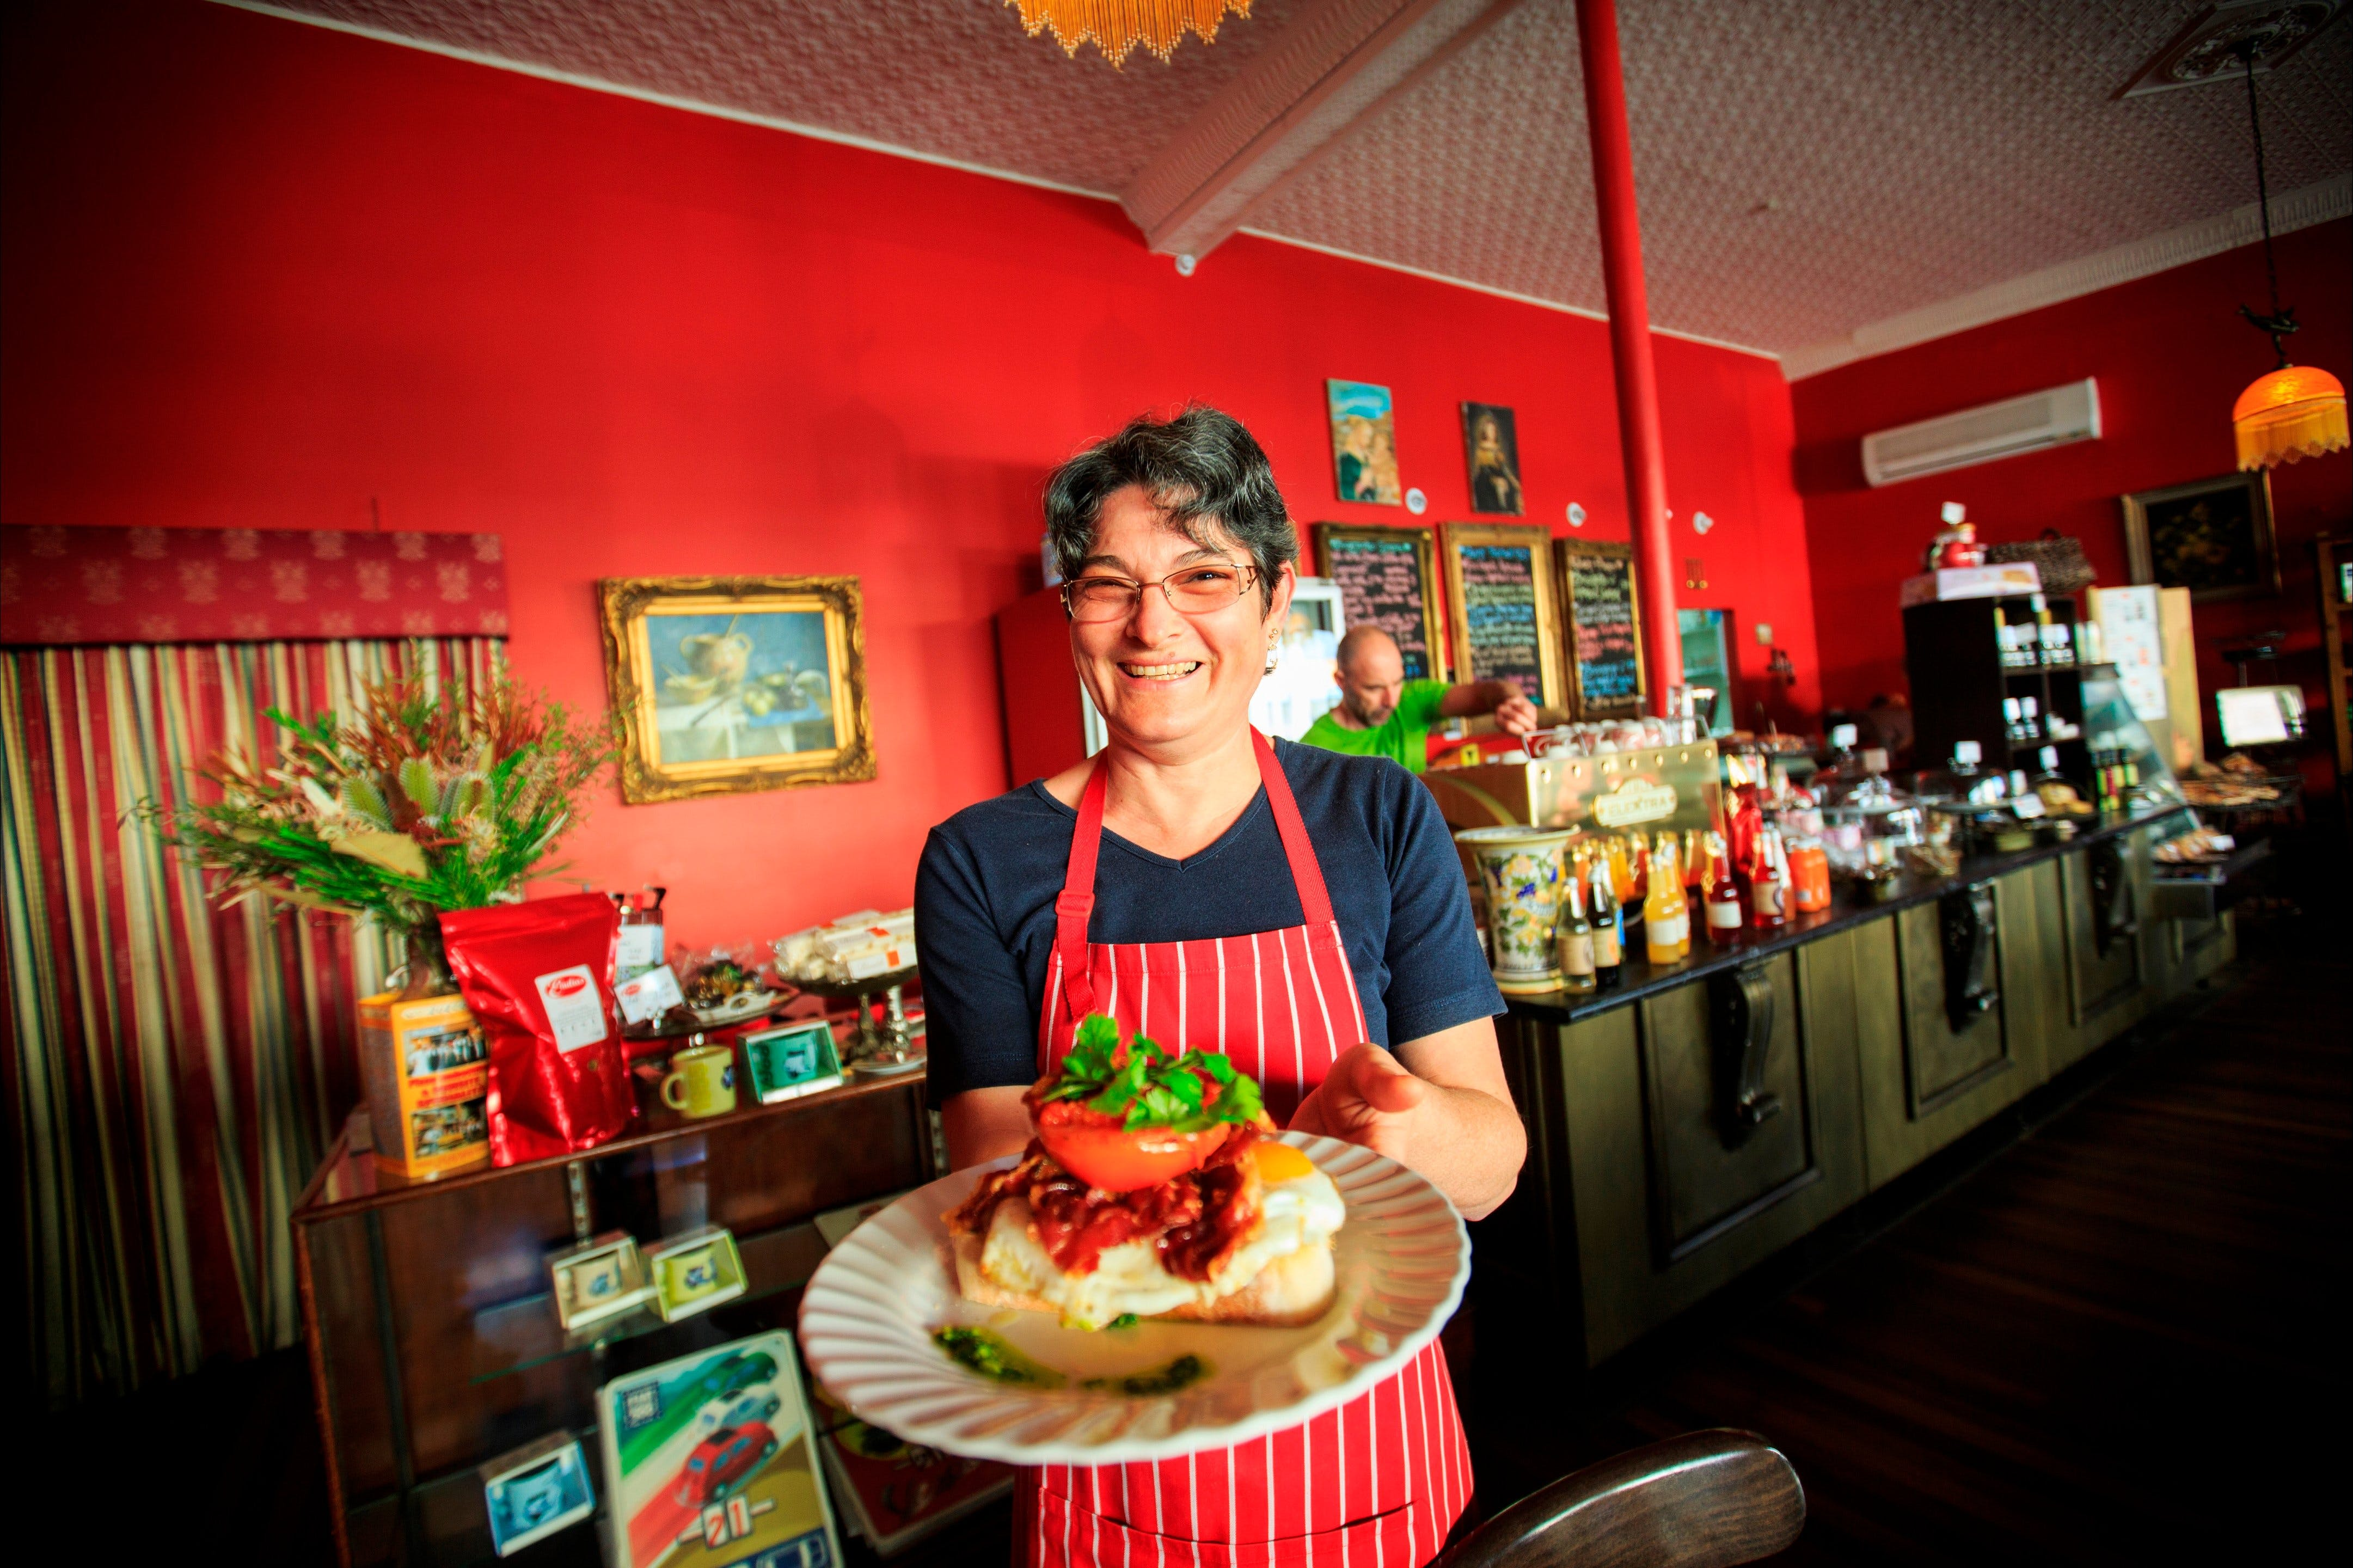 Gympie Region Food Trail - Tourism Adelaide